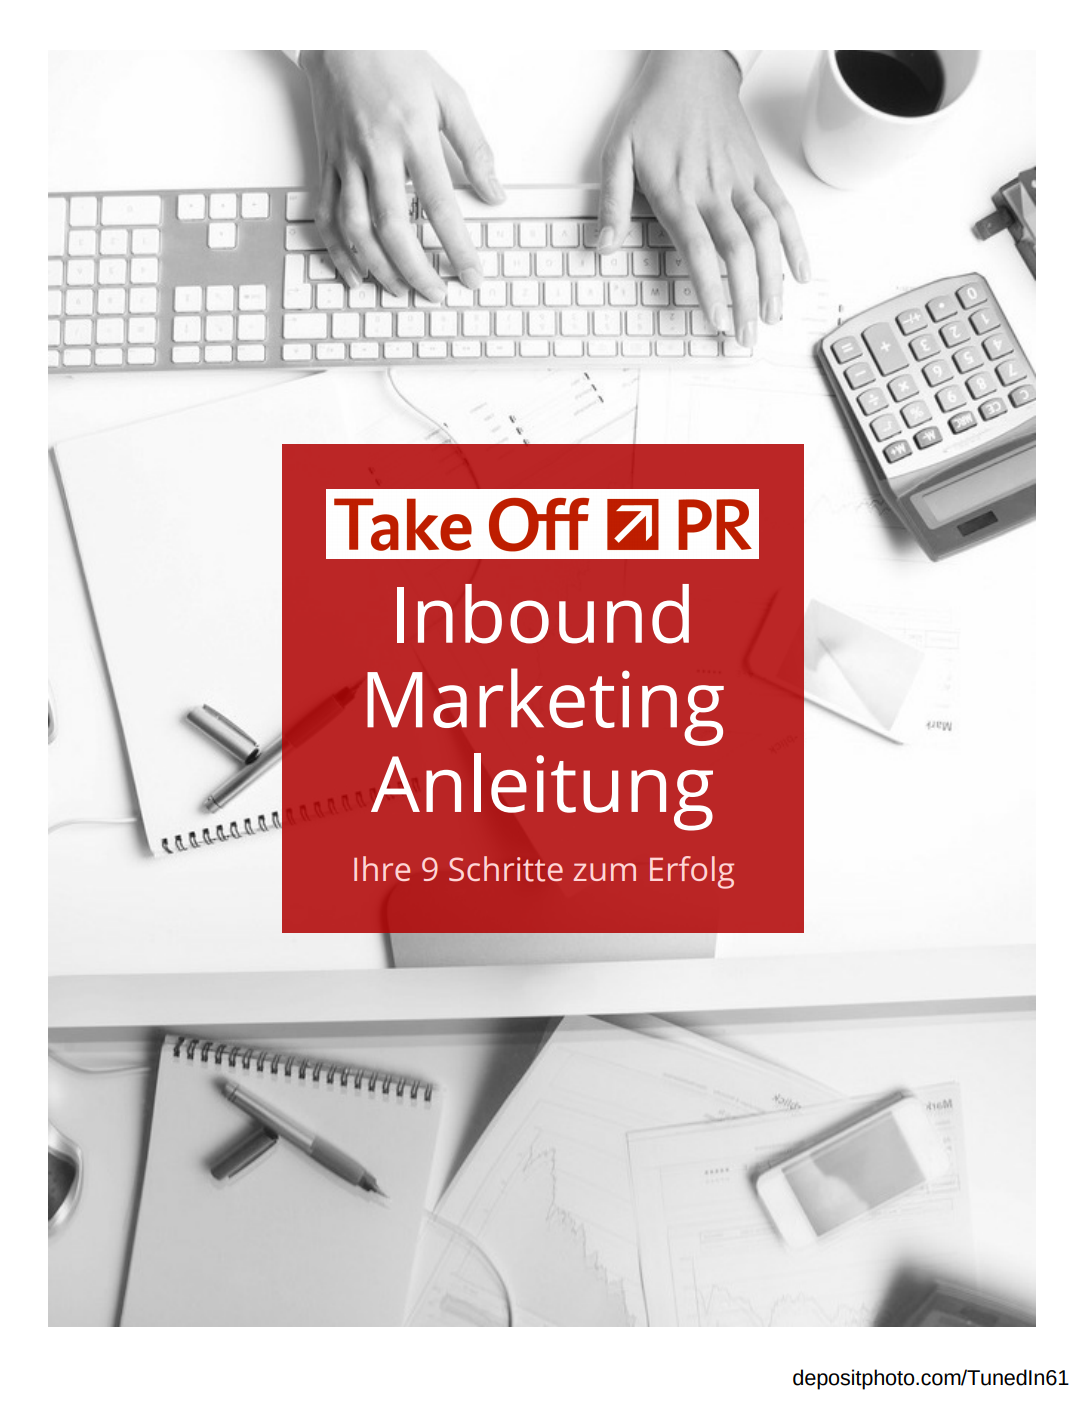 Inbound Marketing Anleitung (cover photo)-1.png